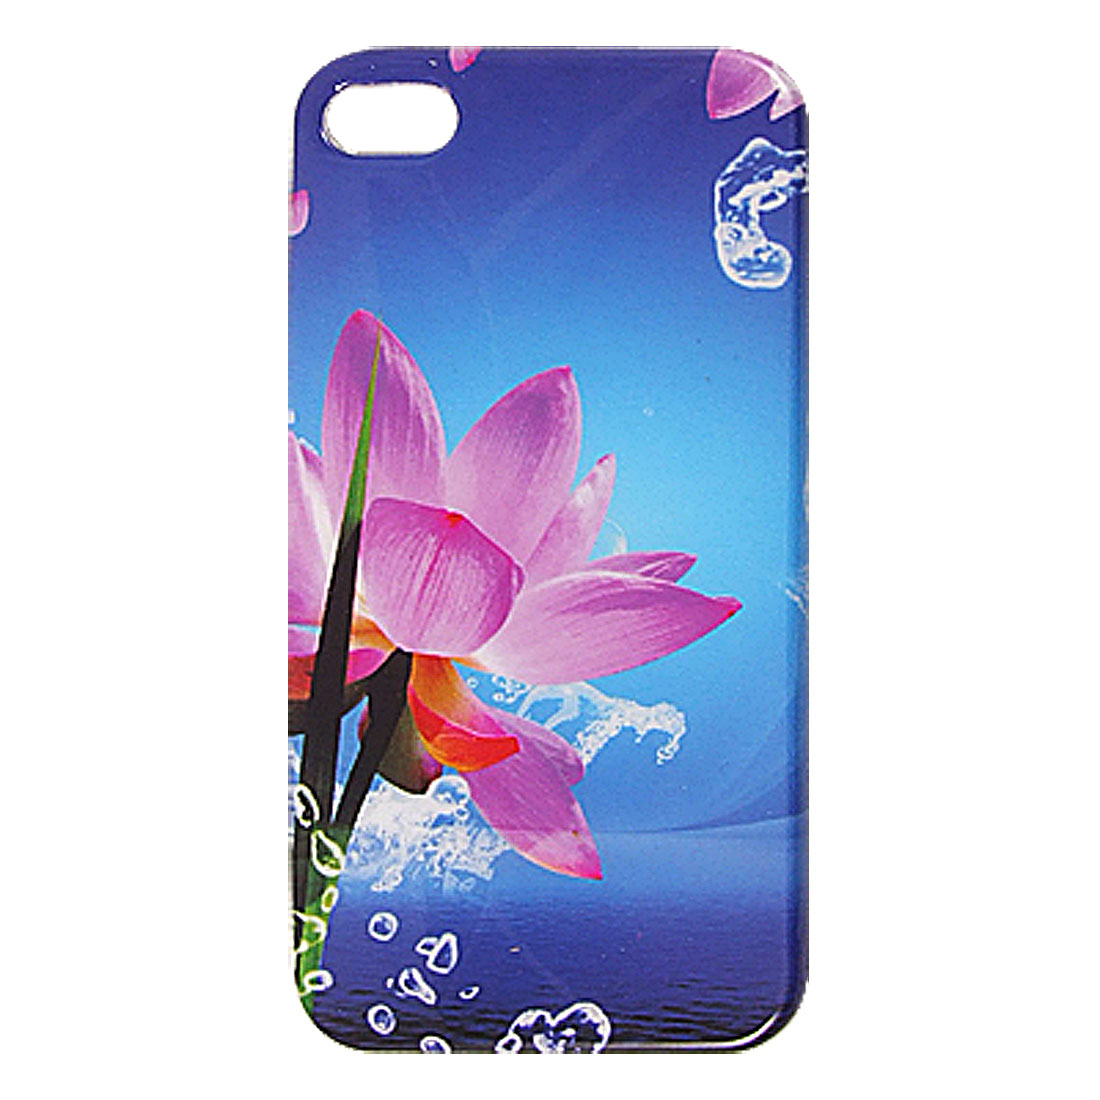 Blue Purple IMD Flower Print Hard Plastic Guard Cover for iPhone 4 4G 4S